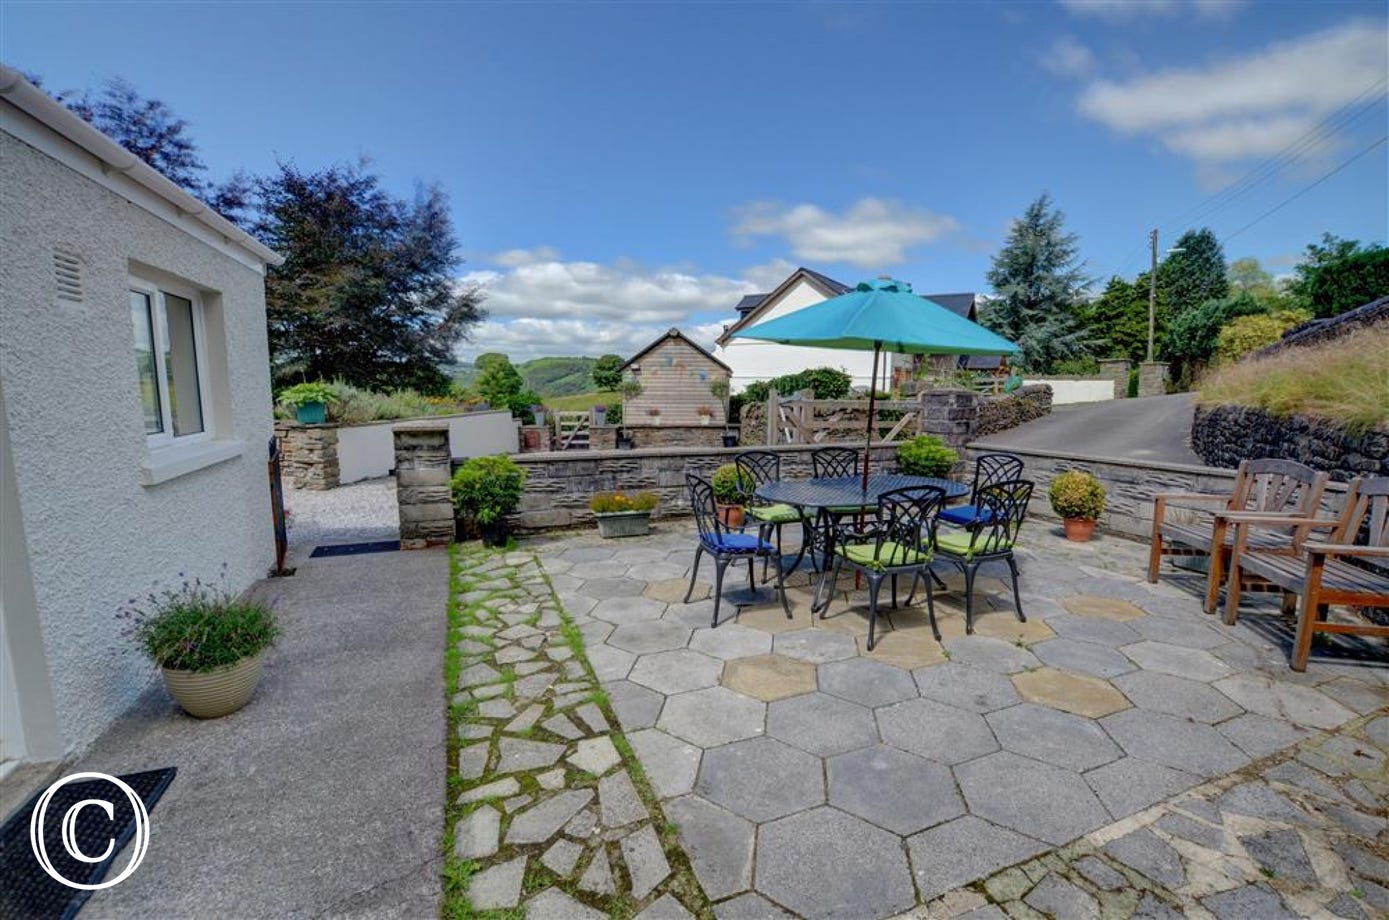 Patio with picnic furniture and countryside views